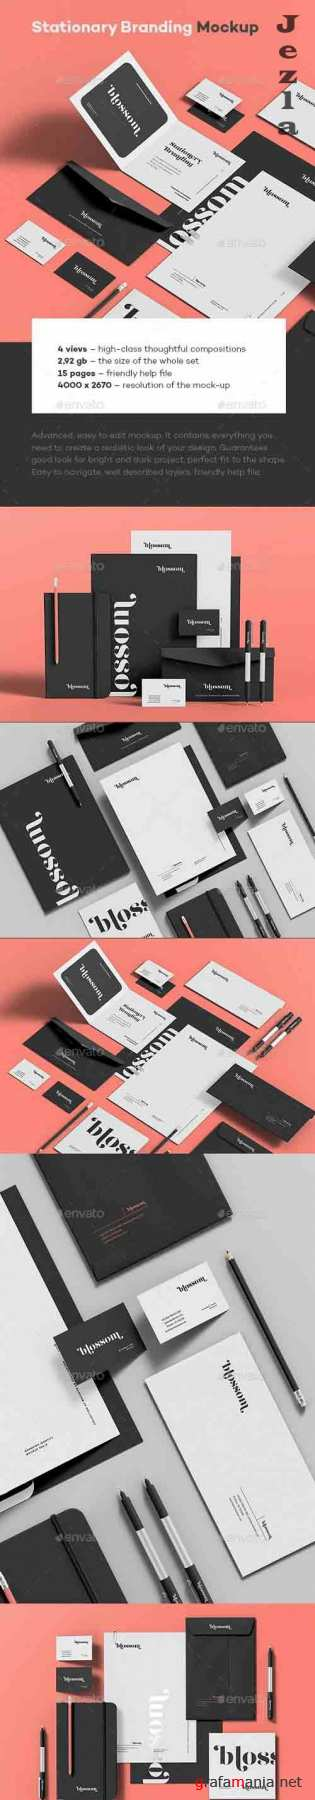 GraphicRiver - Stationary Branding Mock-up 9 30743894